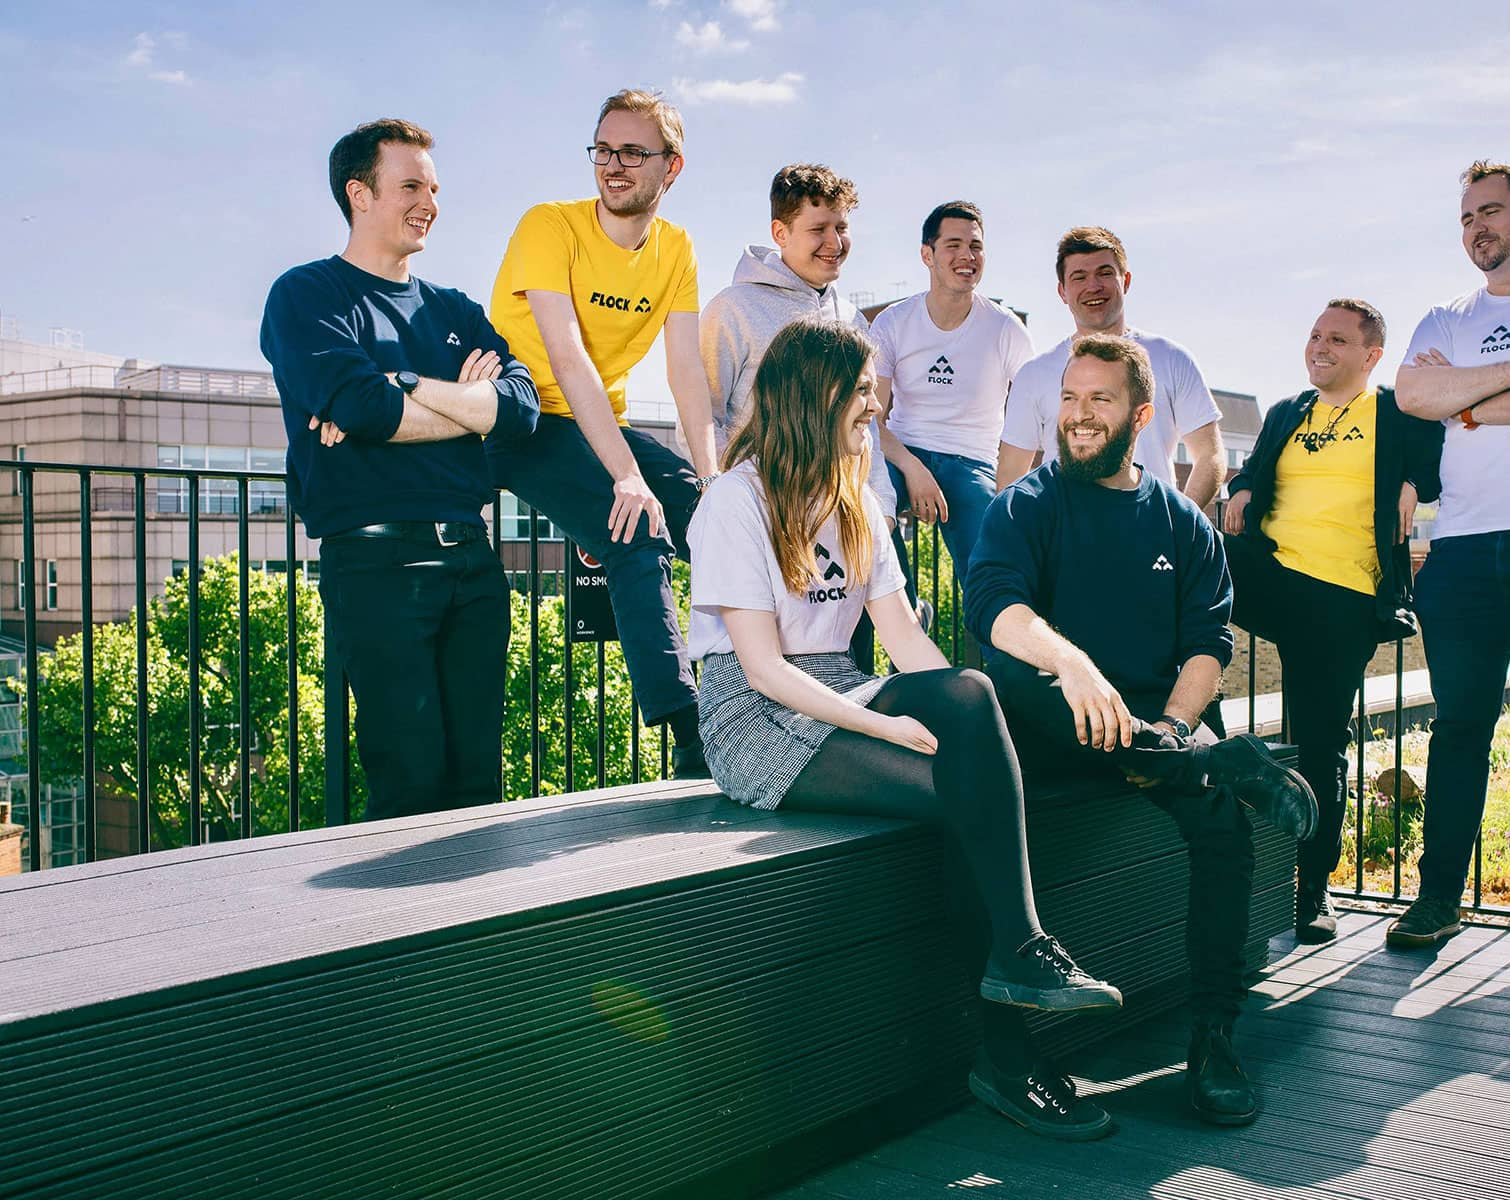 an photo of the flock team smiling in the sun